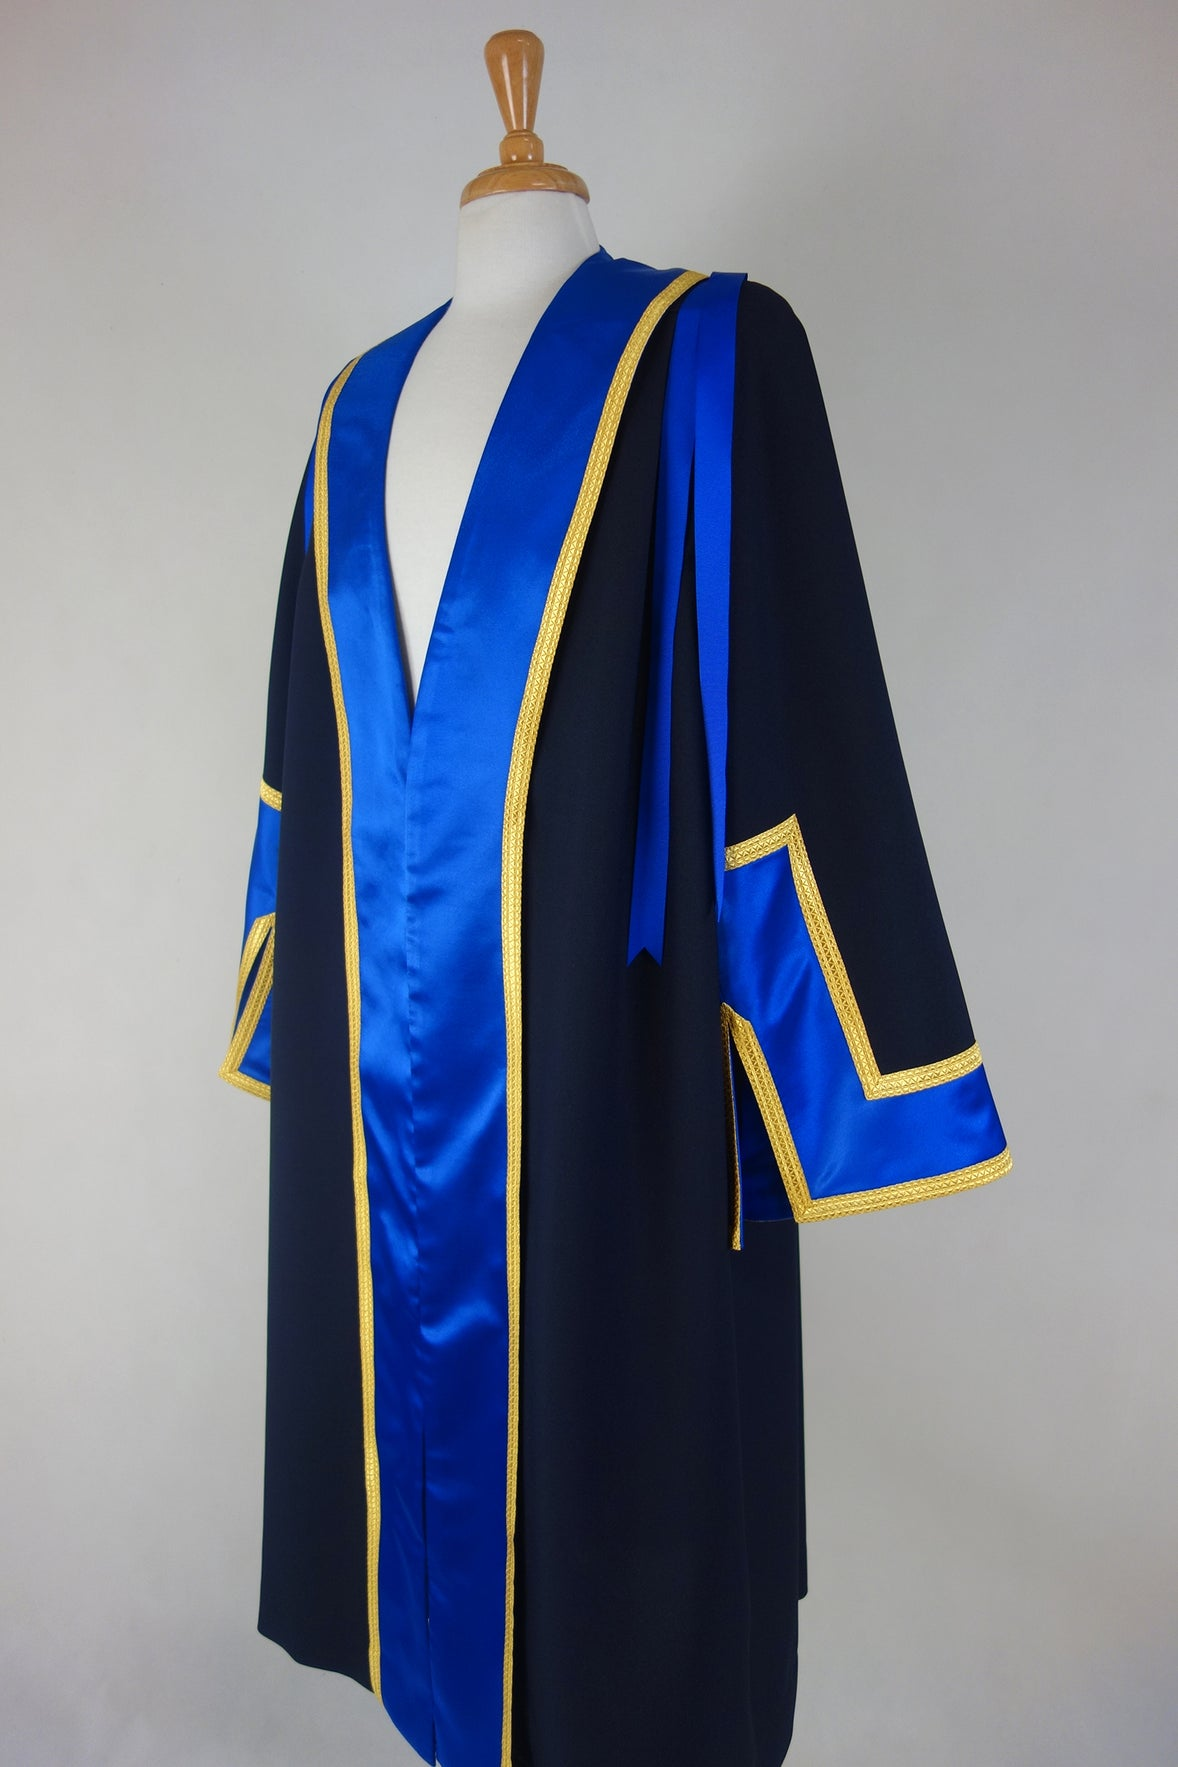 Satin and Gold Mayoral Robe